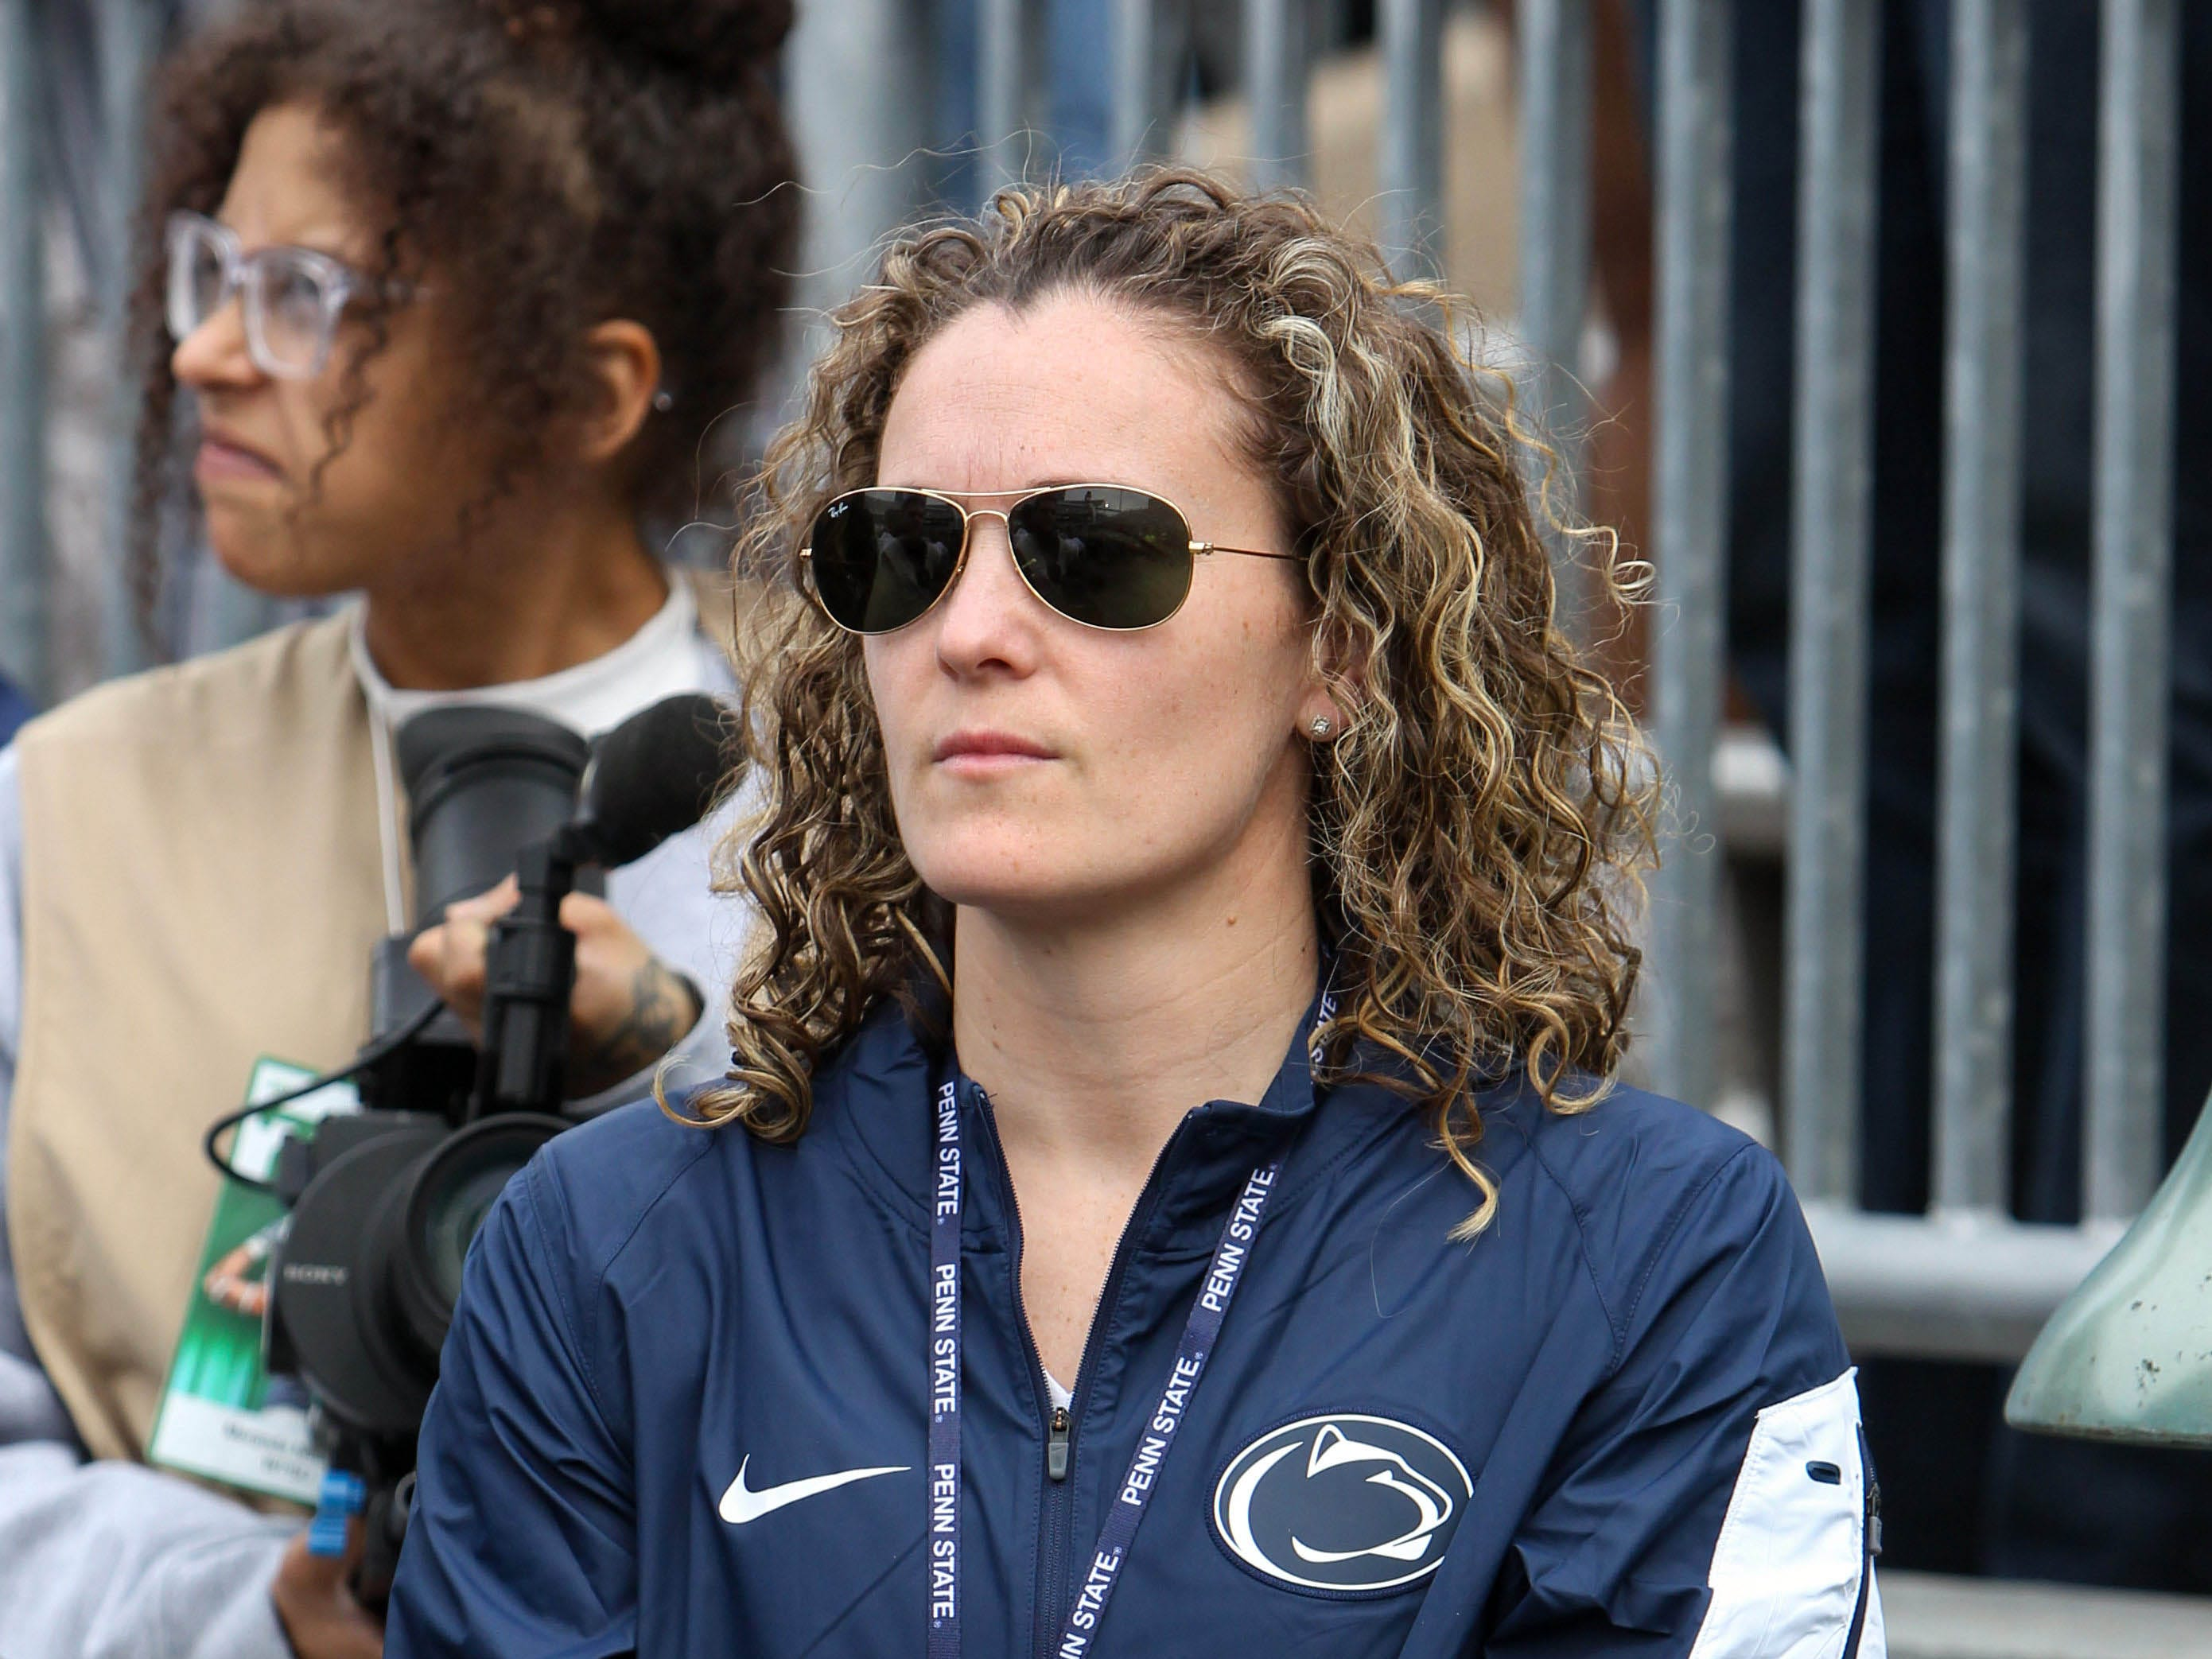 Apr 13, 2019; University Park, PA, USA; Penn State Lady Lions basketball head coach Carolyn Kieger looks on prior to the Blue White spring game at Beaver Stadium. Mandatory Credit: Matthew O'Haren-USA TODAY Sports